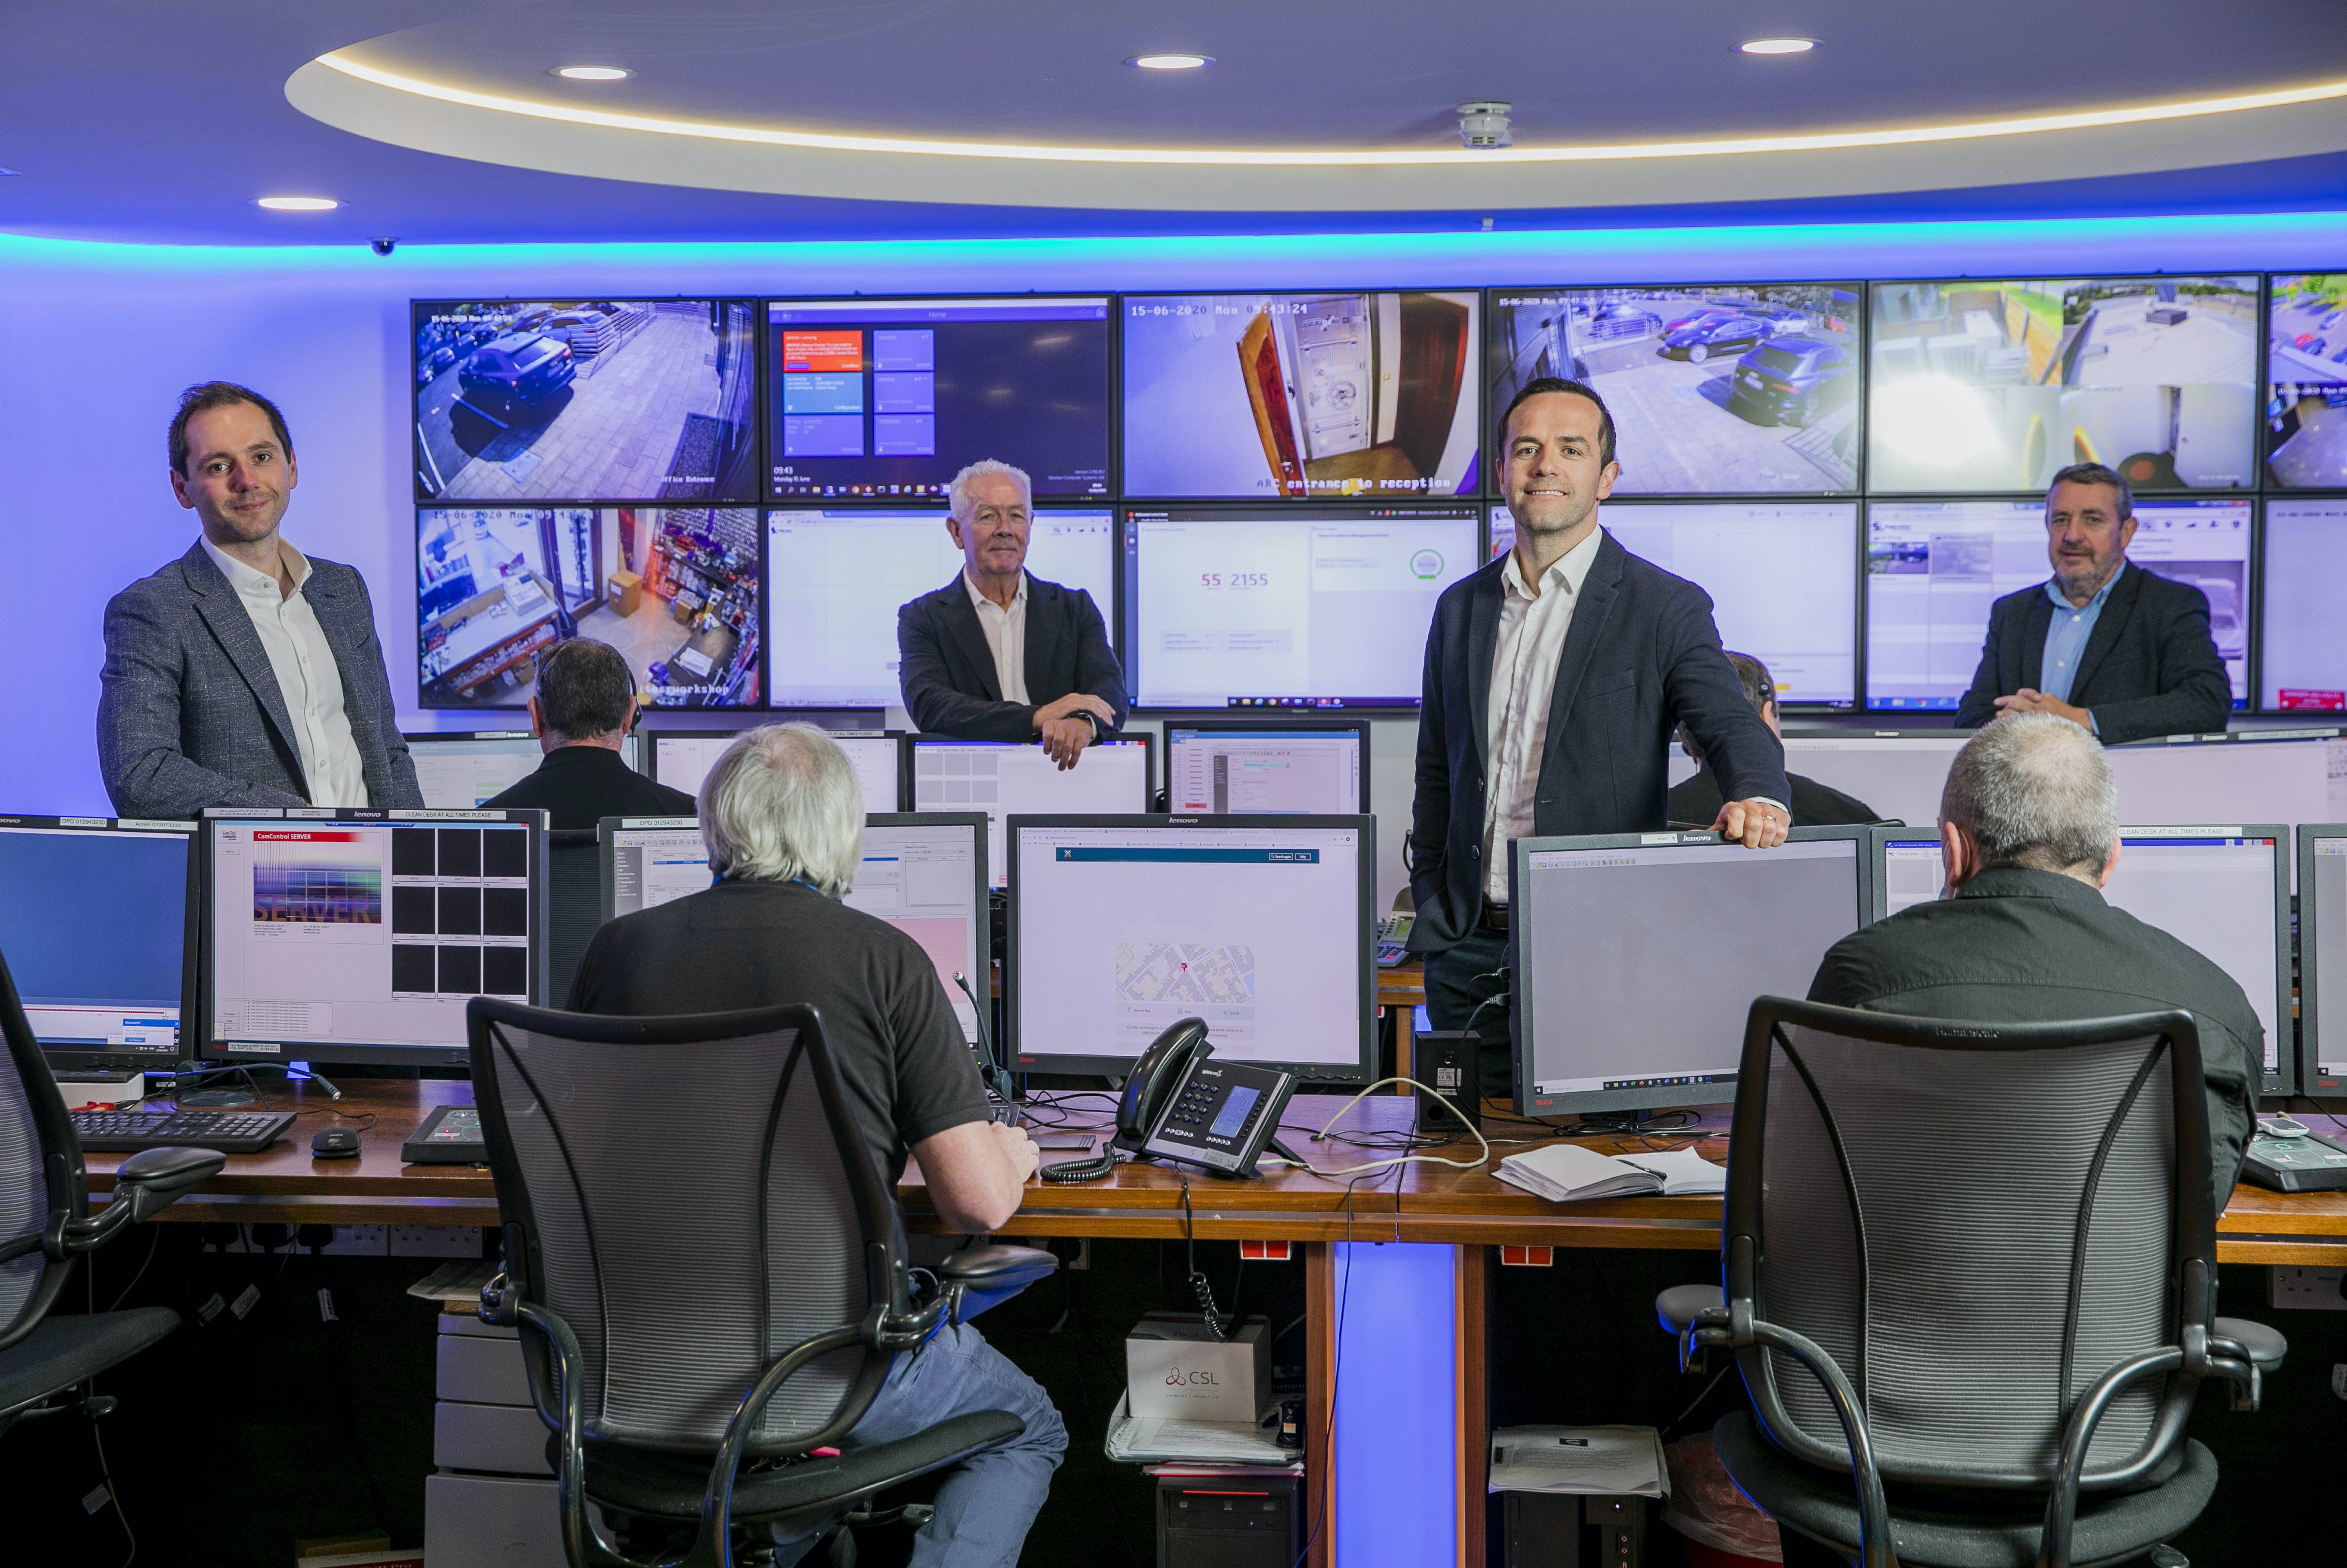 BGF invests €3.6 million in Action24; a leading security and alarm company servicing the domestic and commercial markets in Ireland.     Second BGF investment in Ireland this month and fifth in past 17 months.